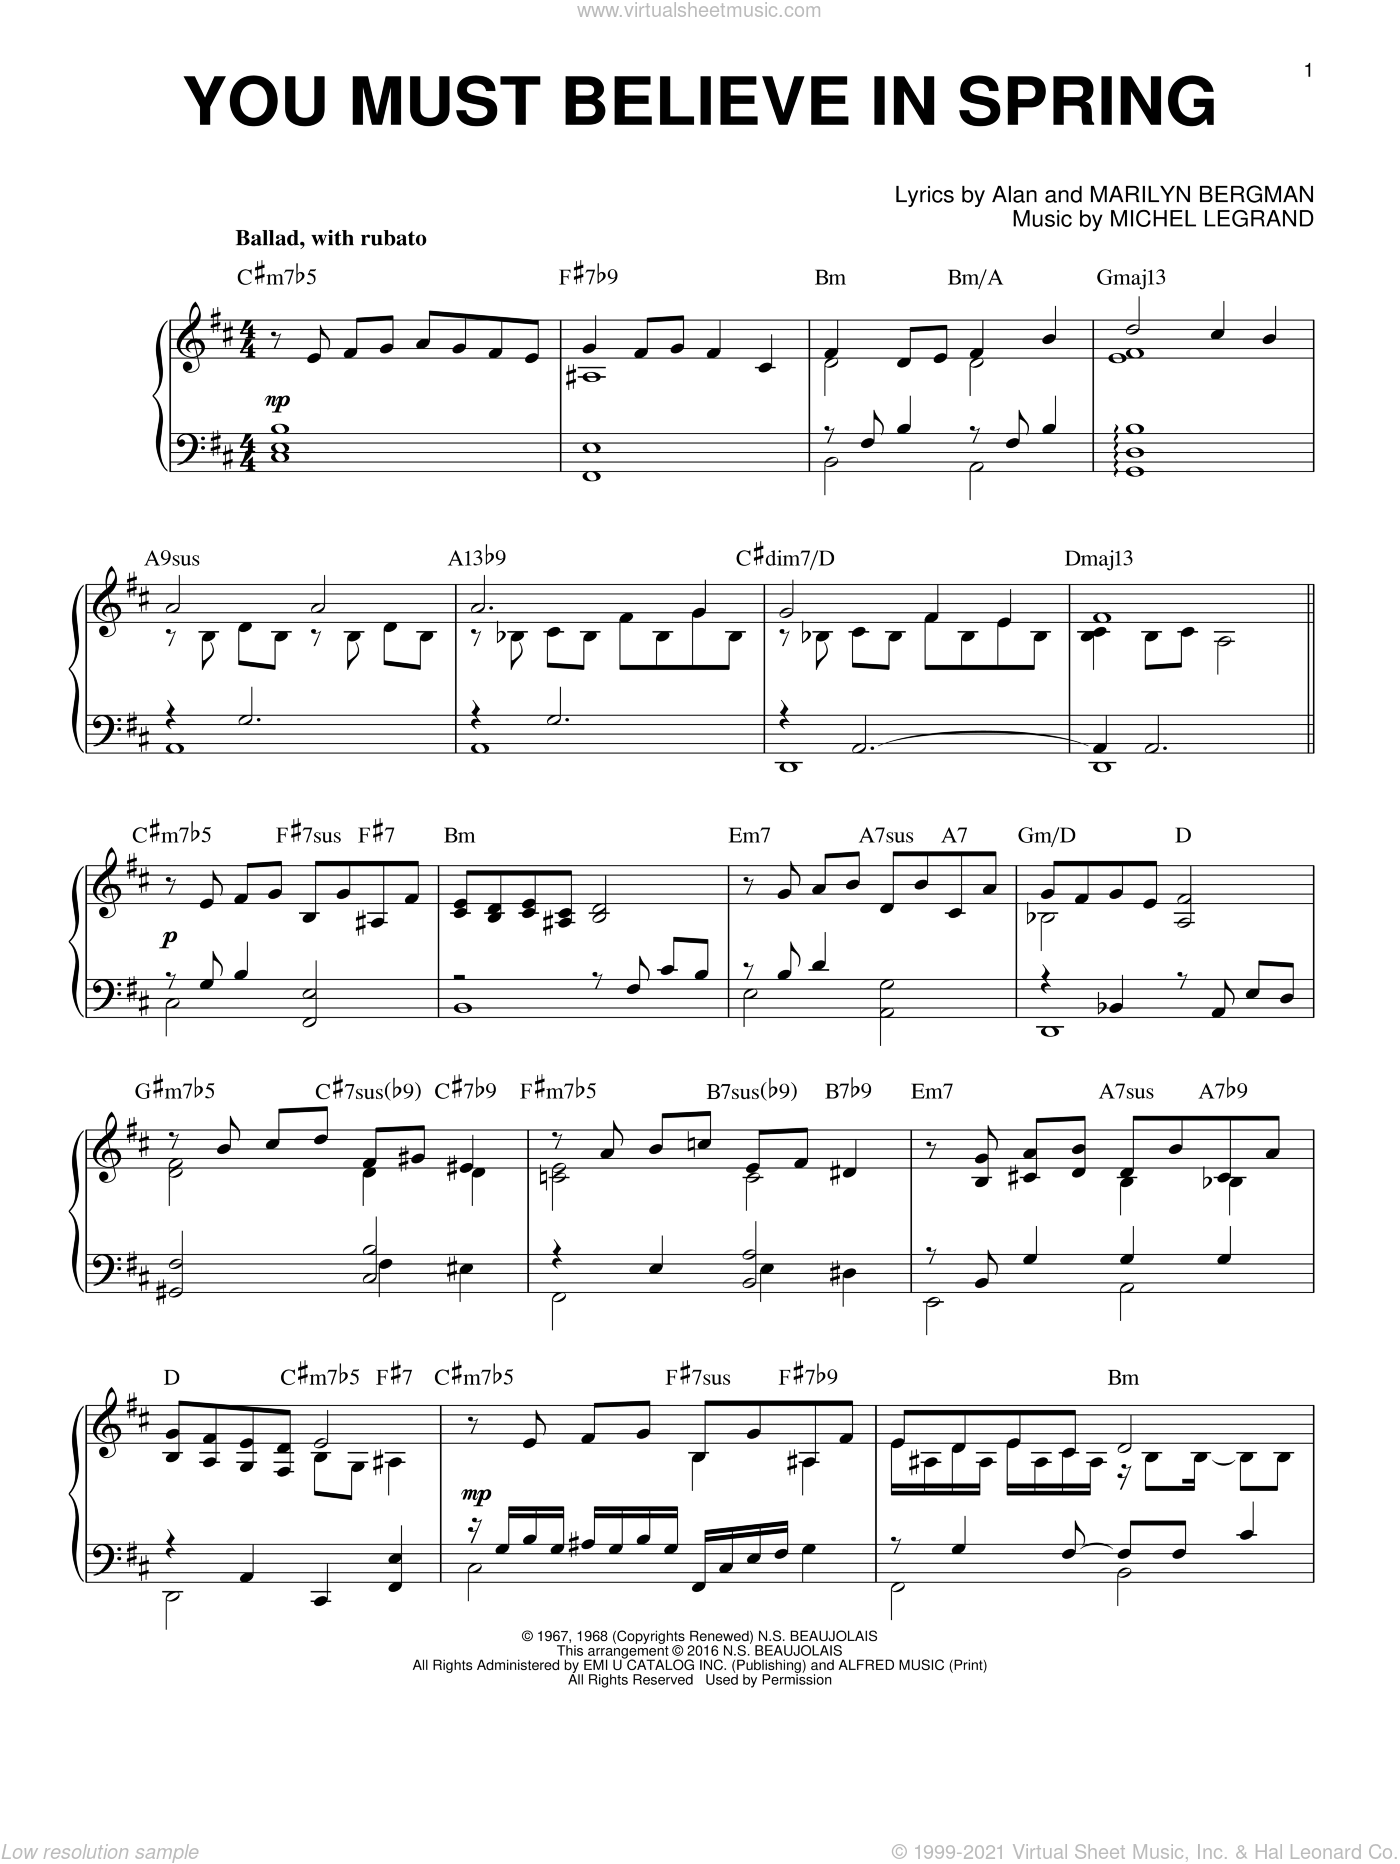 You Must Believe In Spring sheet music for piano solo by Michel LeGrand, Alan Bergman and Marilyn Bergman, intermediate skill level